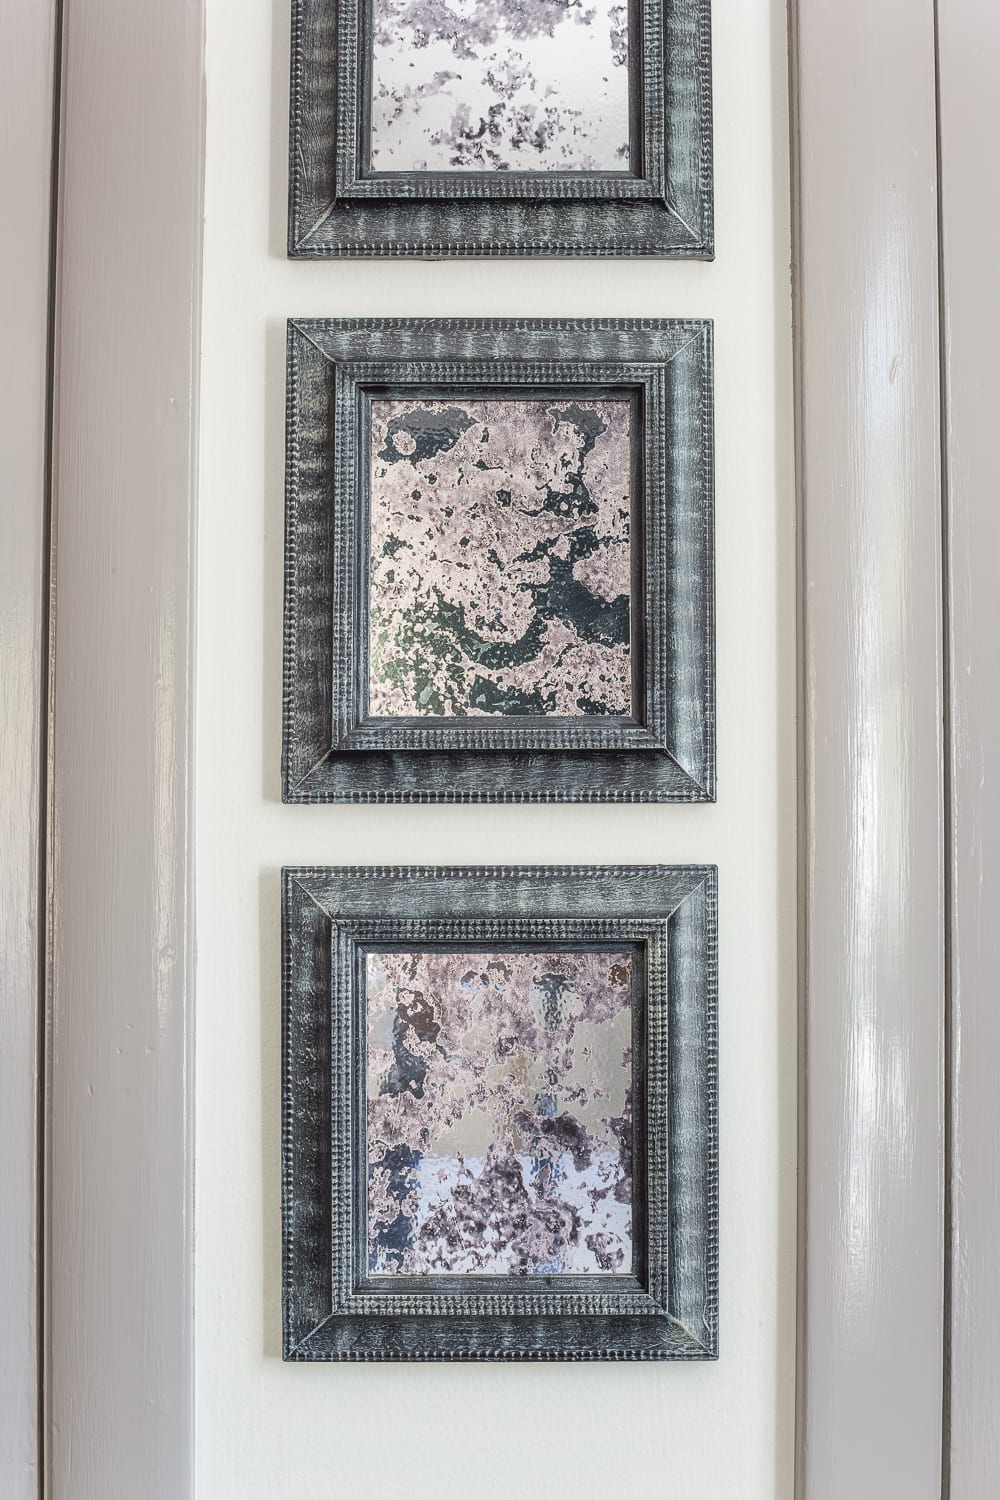 How to make DIY antique mirrors using old secondhand picture frames easily and without the mess.